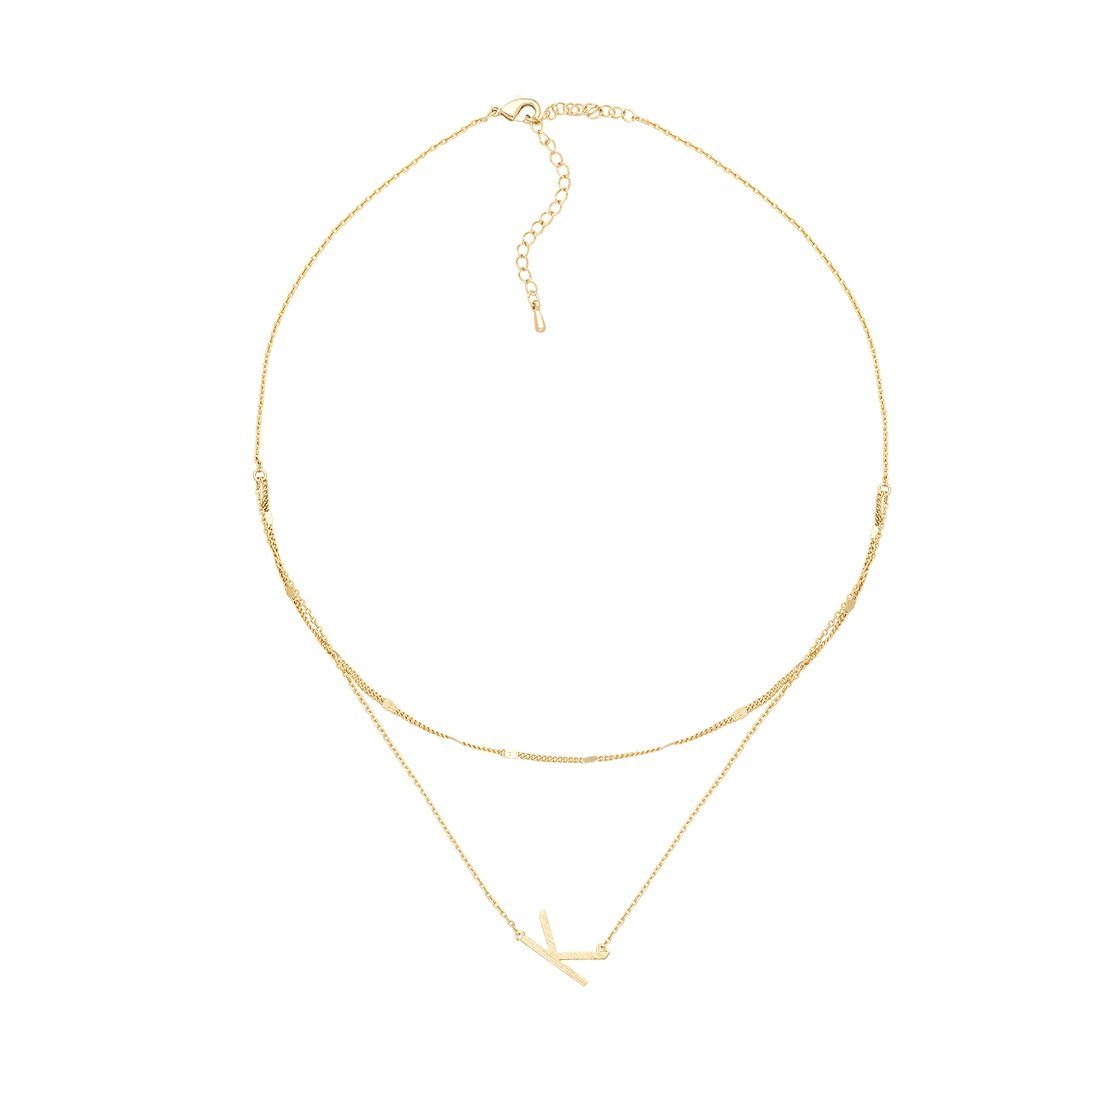 K Gold Double Chain Necklace